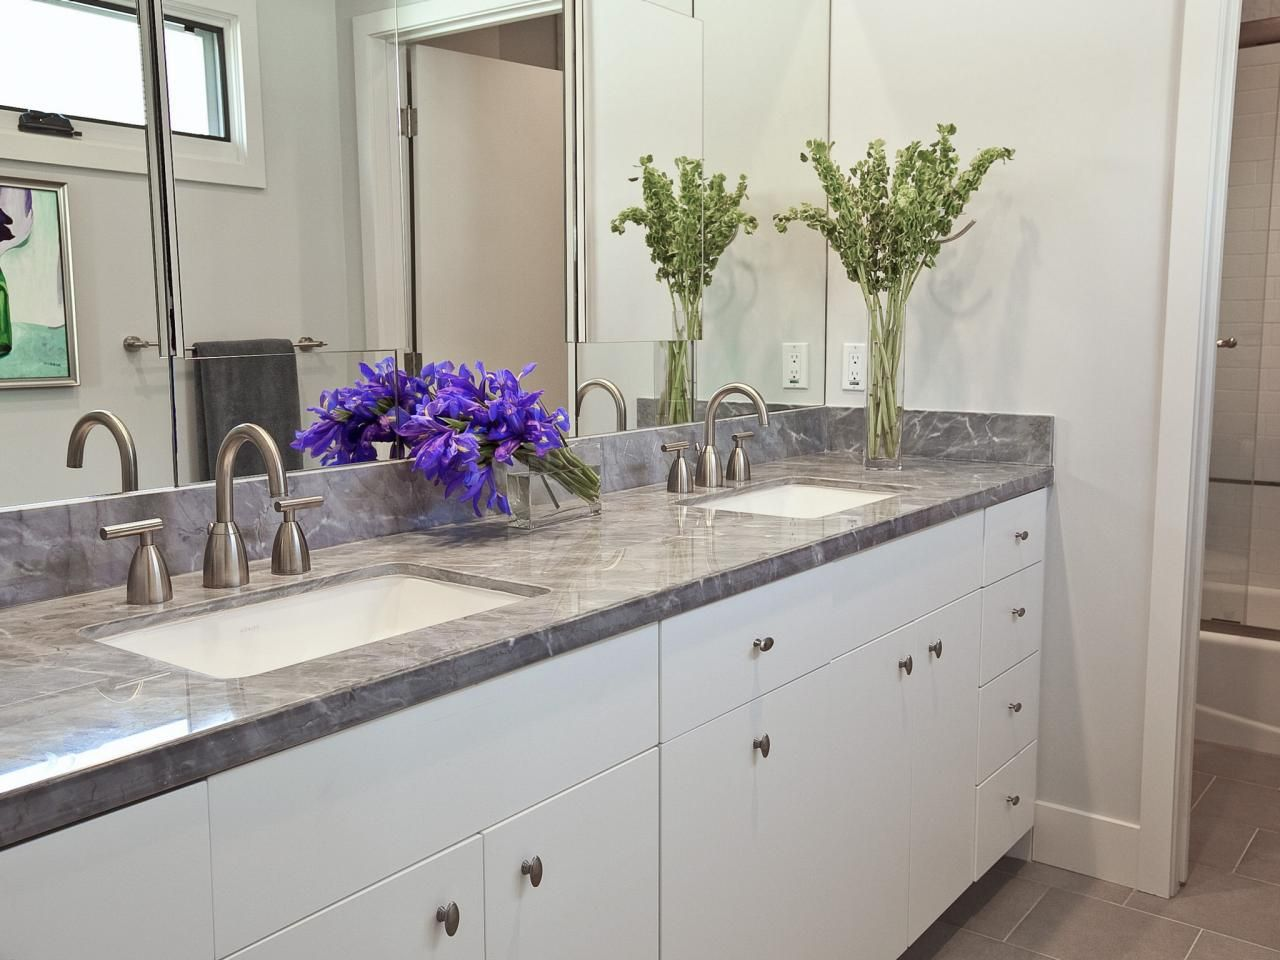 This Bathroom Keeps It Simple And Clean With A Modern White Double